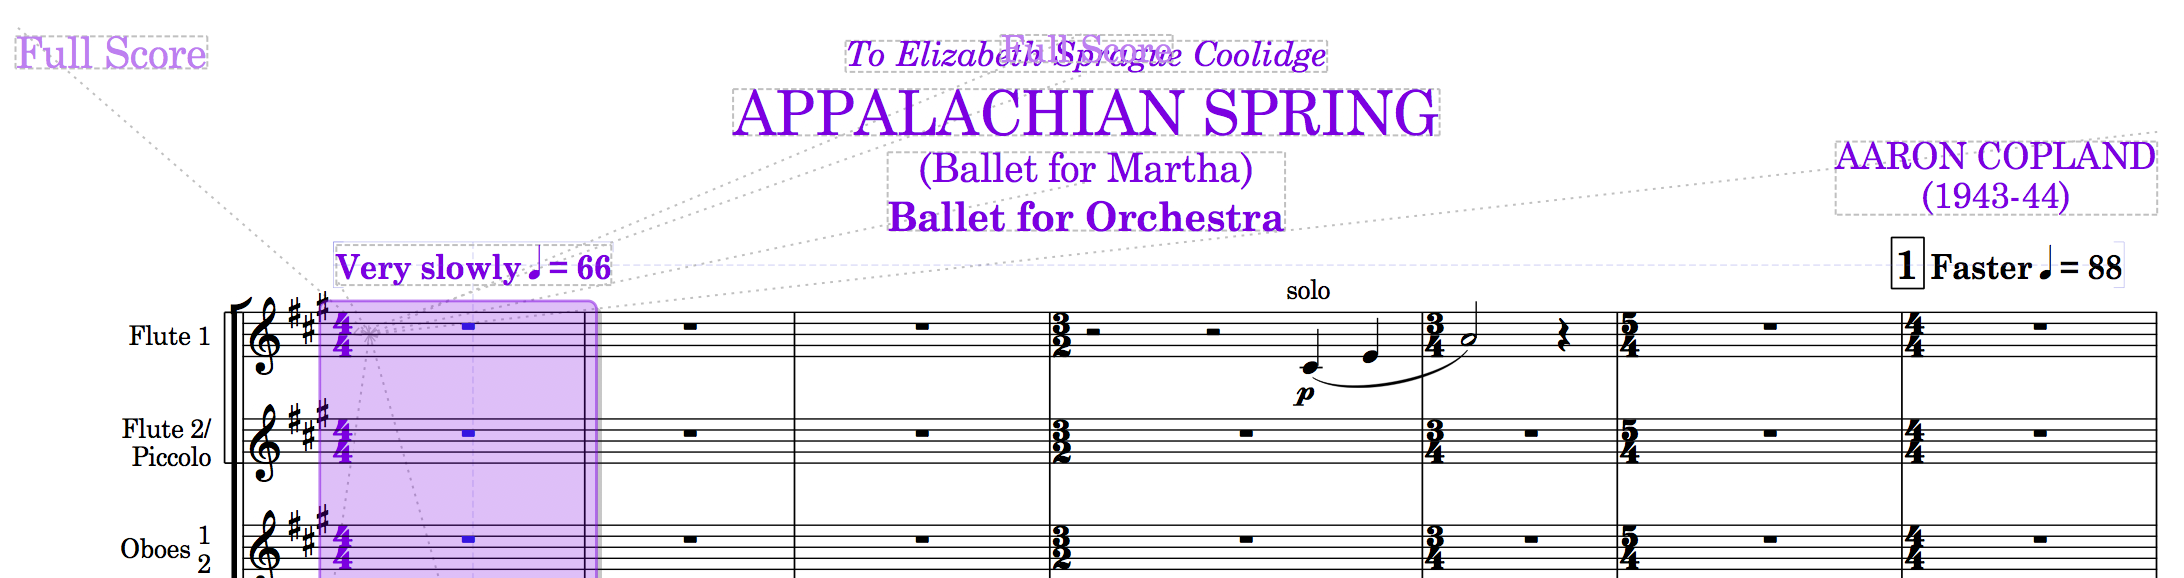 Sibelius 2018 4 released with multi-edits for text, better note